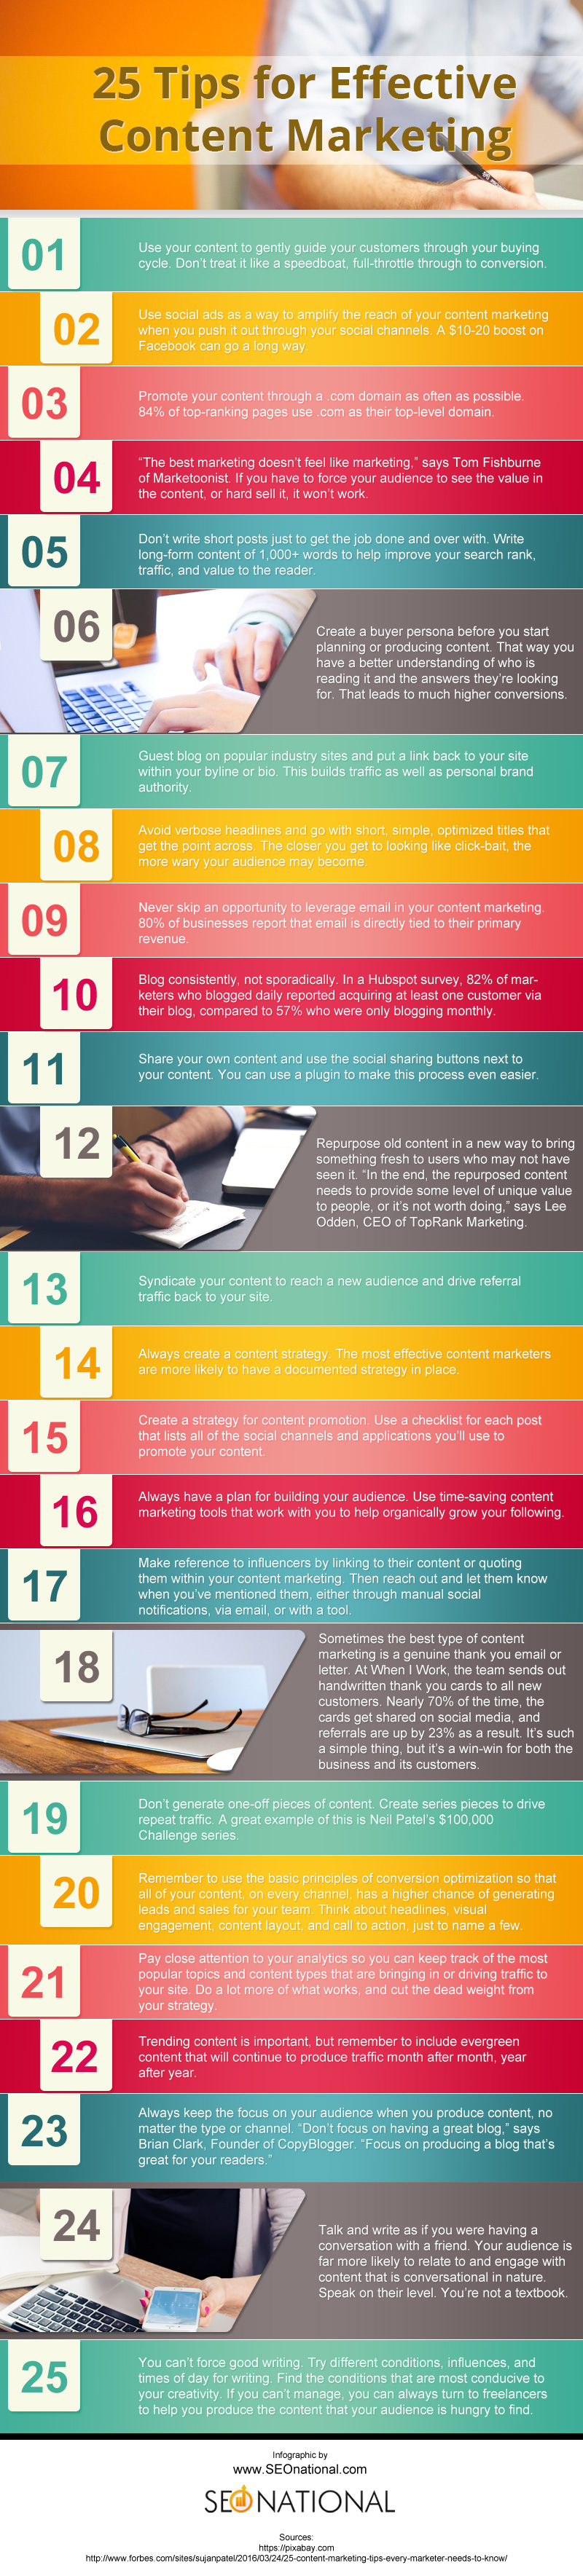 25 Tips for Effective Content Marketing [infographic]